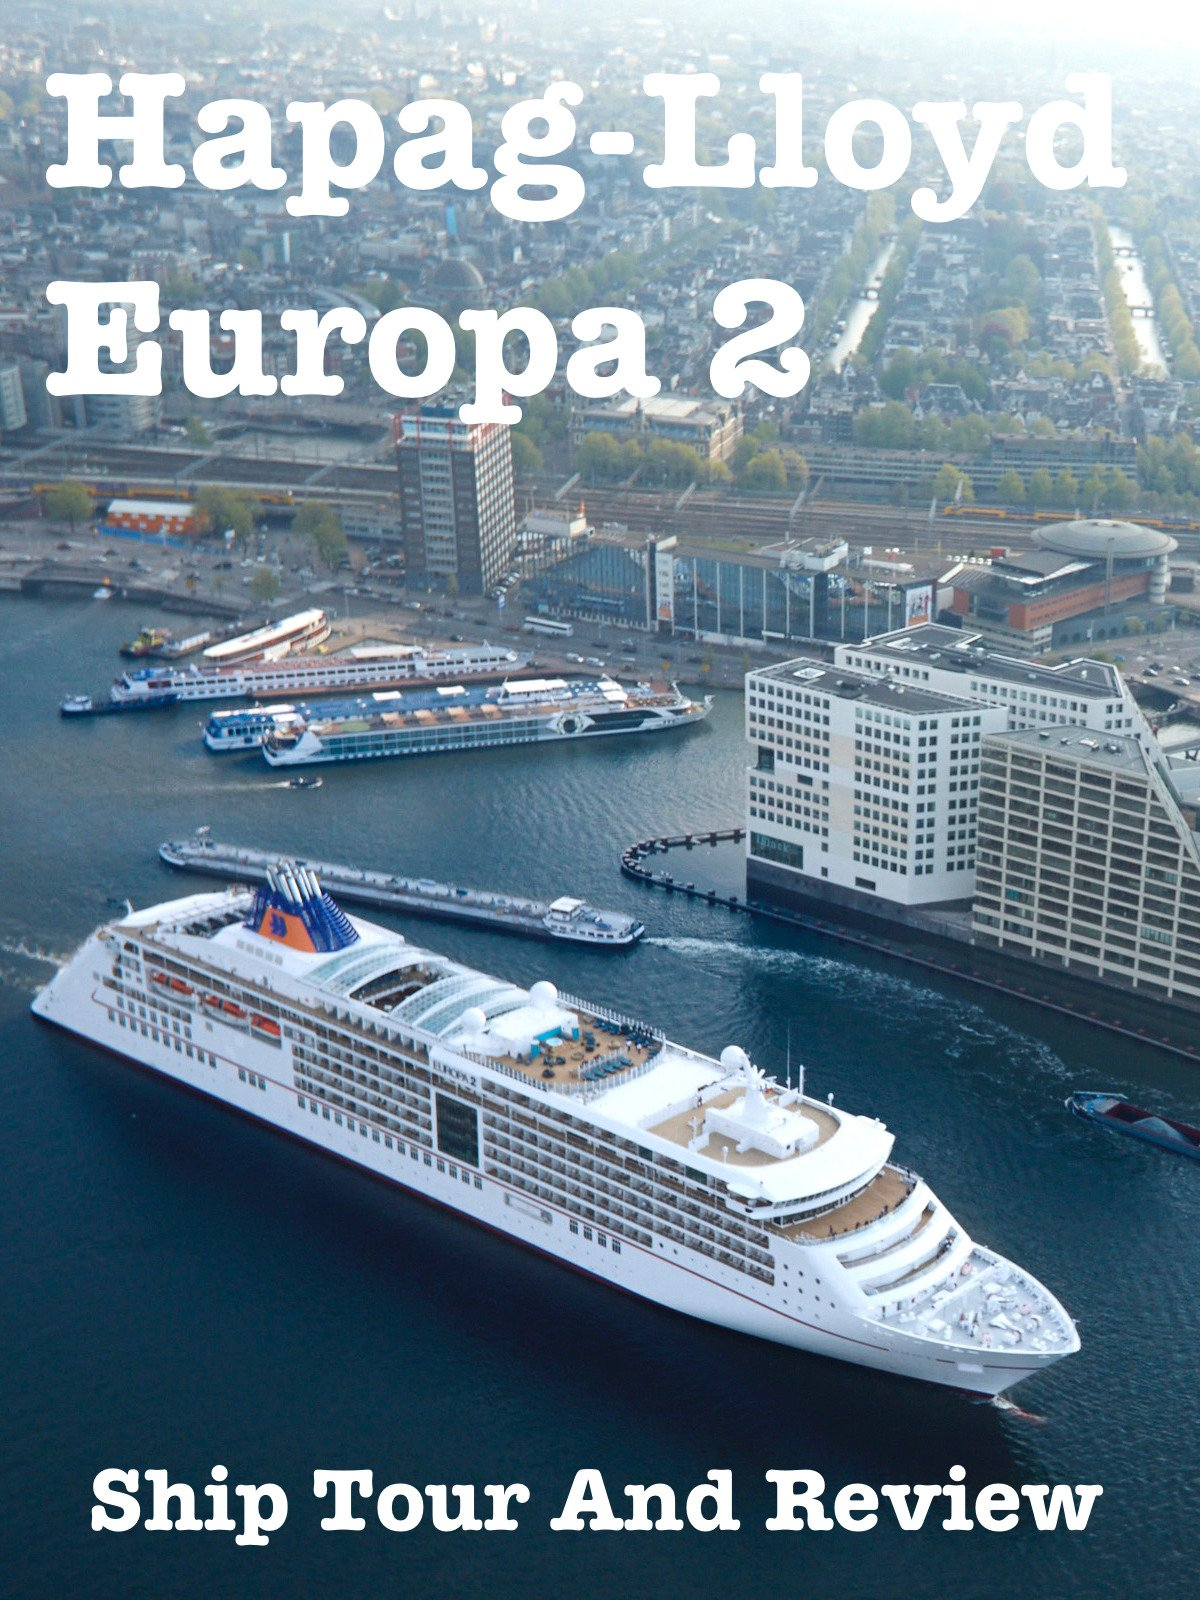 Clip: Hapag-Lloyd Europa 2 Ship Tour And Review